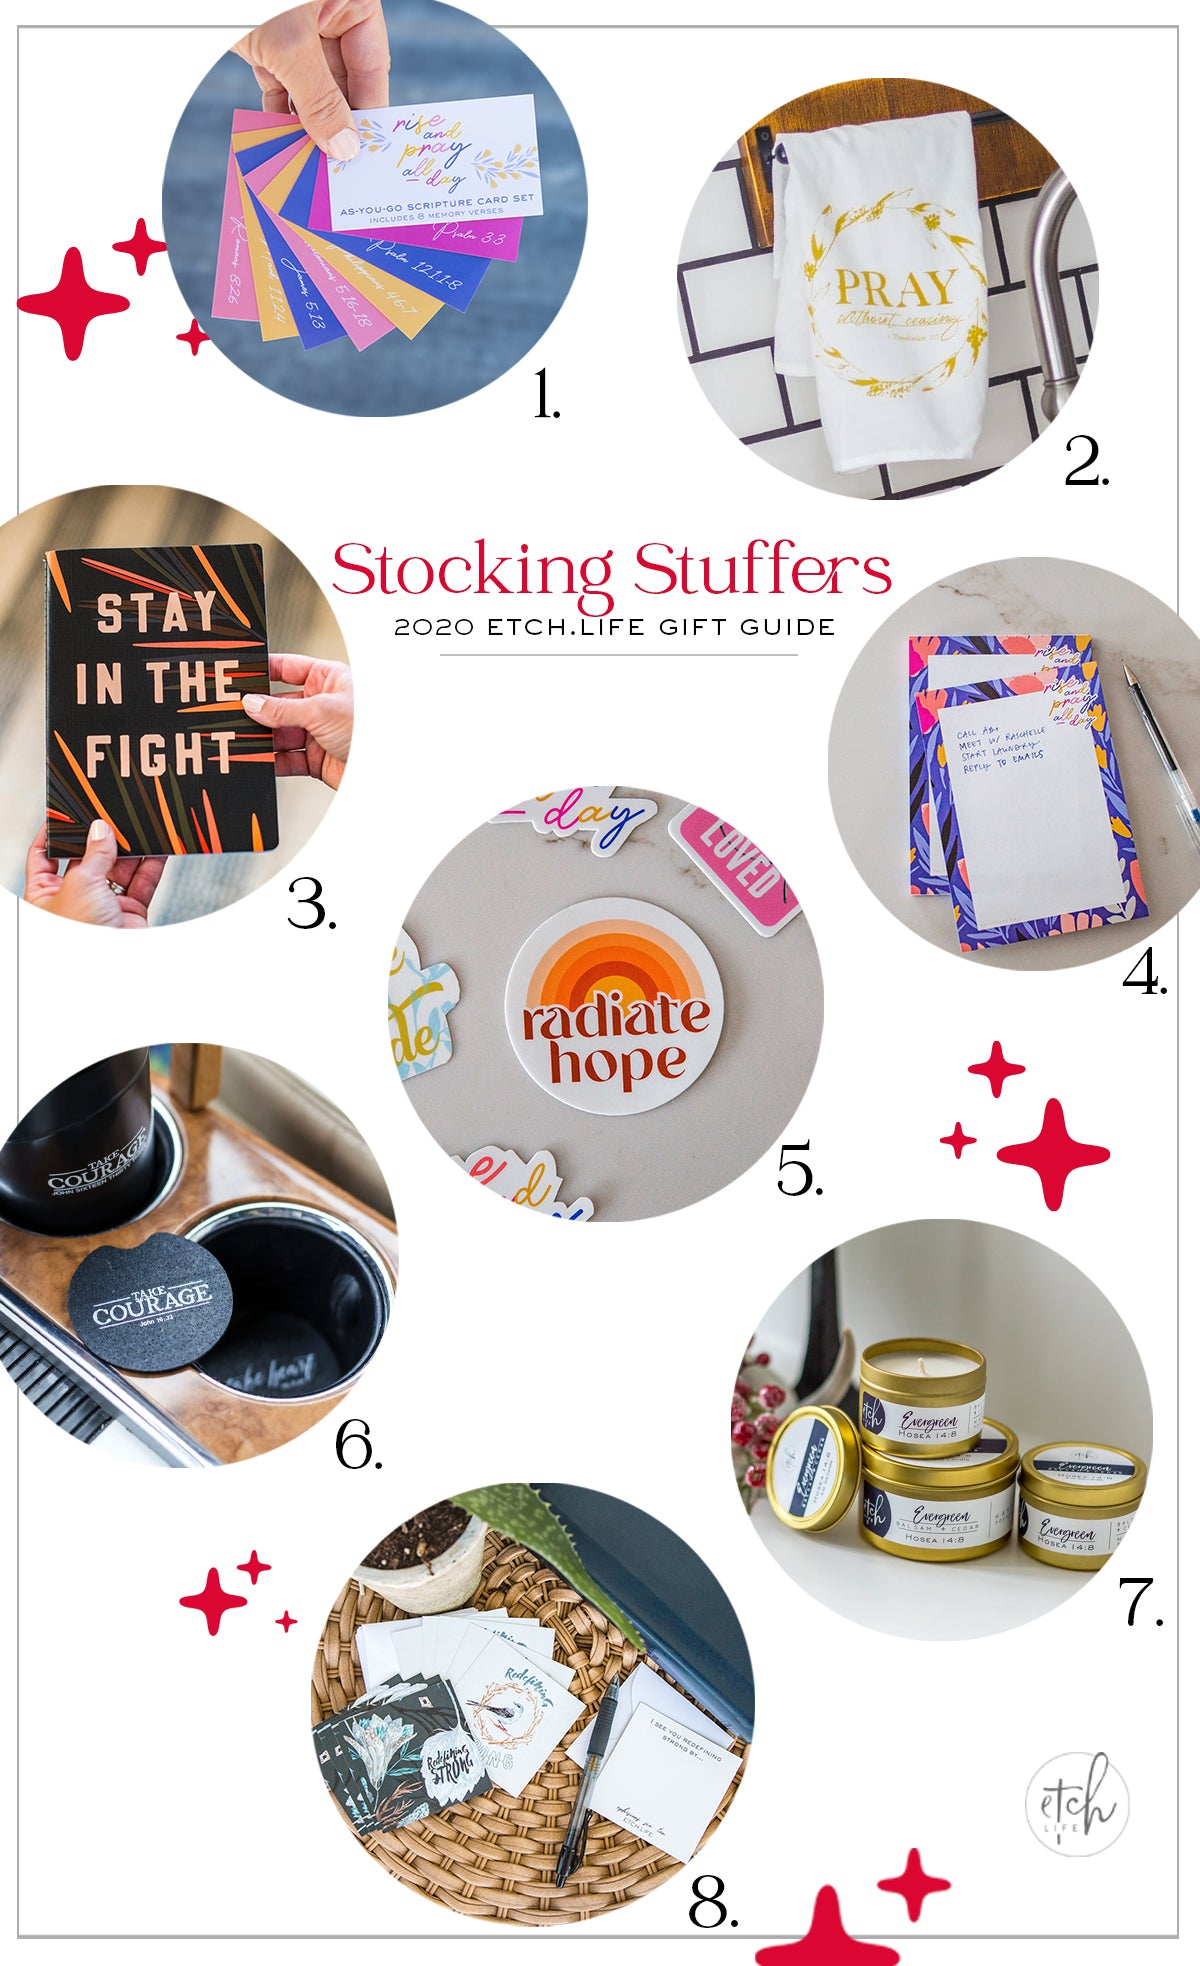 EtchLife Gift Guide Stocking Stuffers